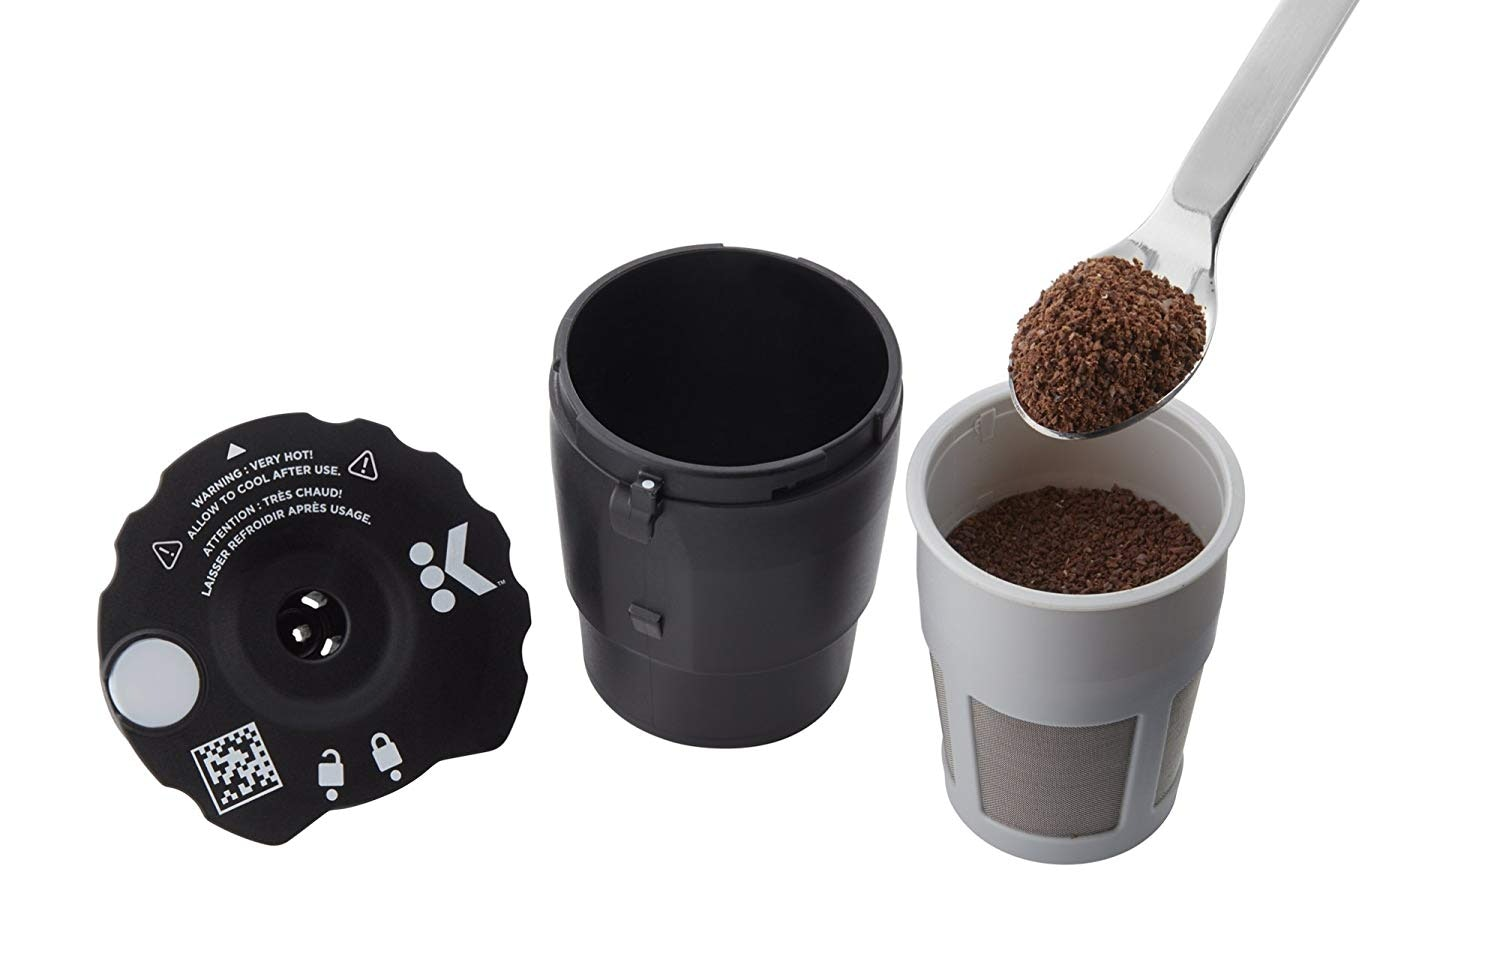 Includes 3 Filters Coffee Mug Compatible with K-Cups and Reusable K-Cups